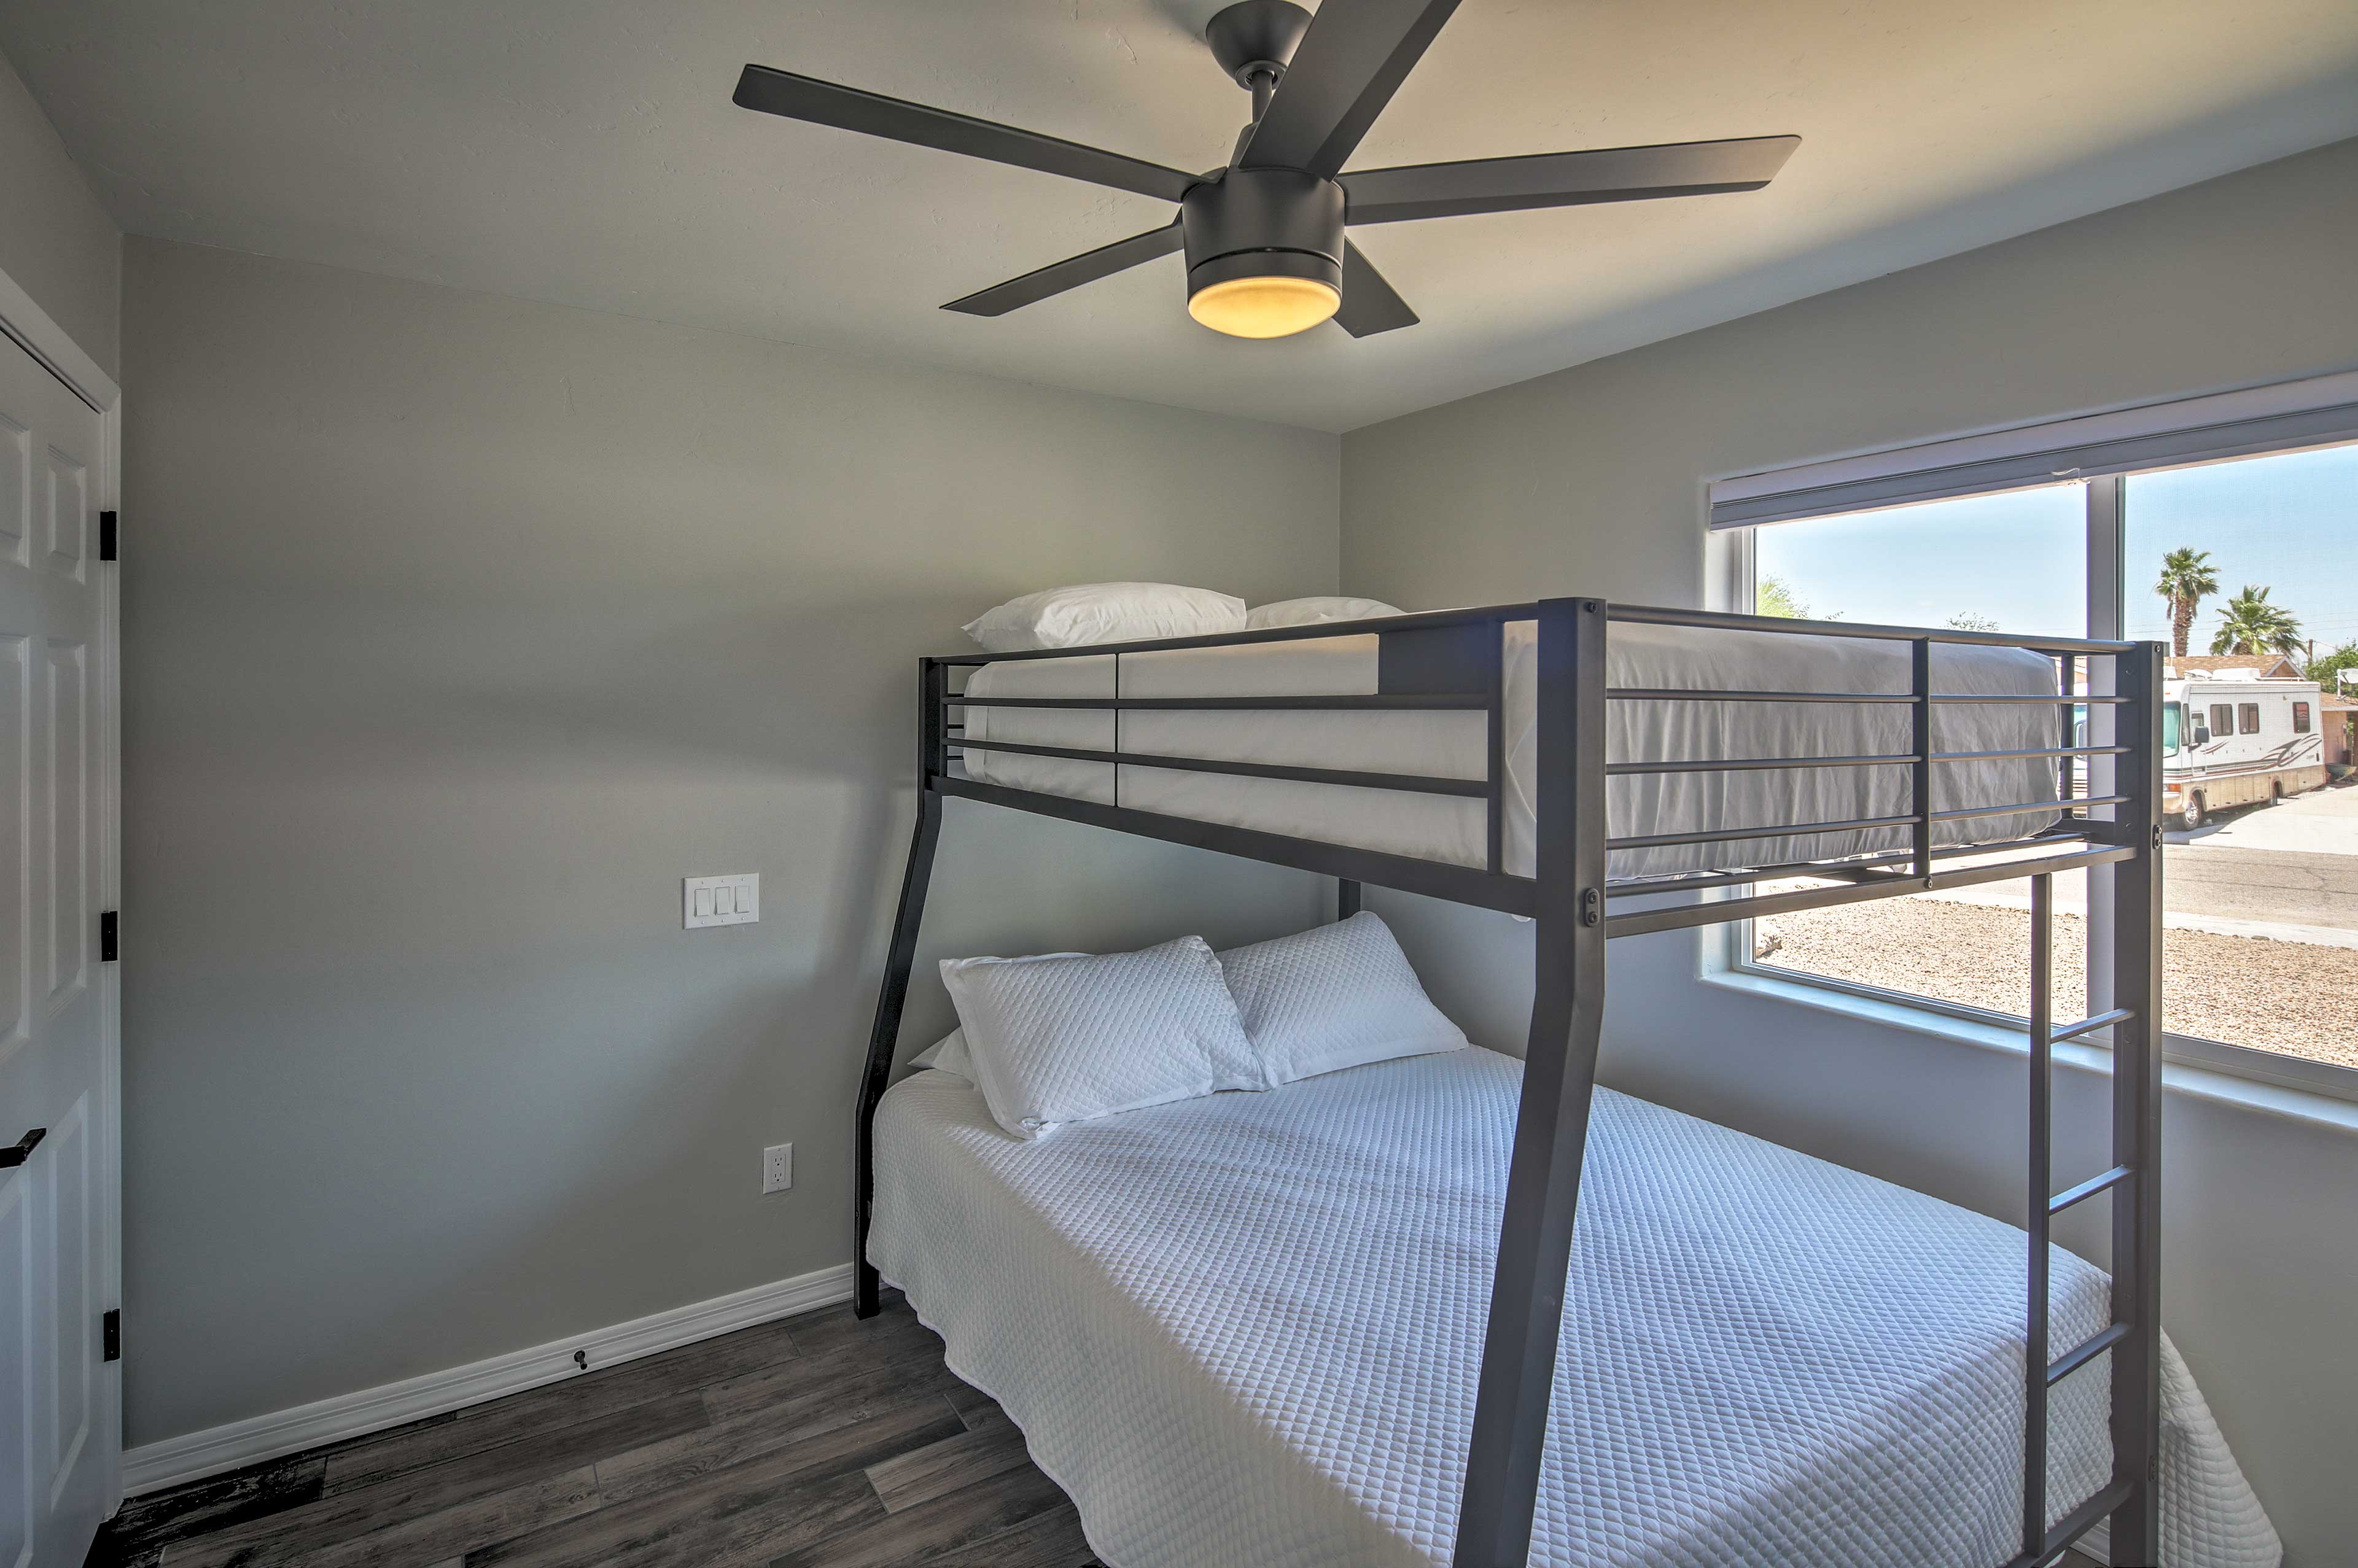 This room includes a twin-over-queen bunk bed.